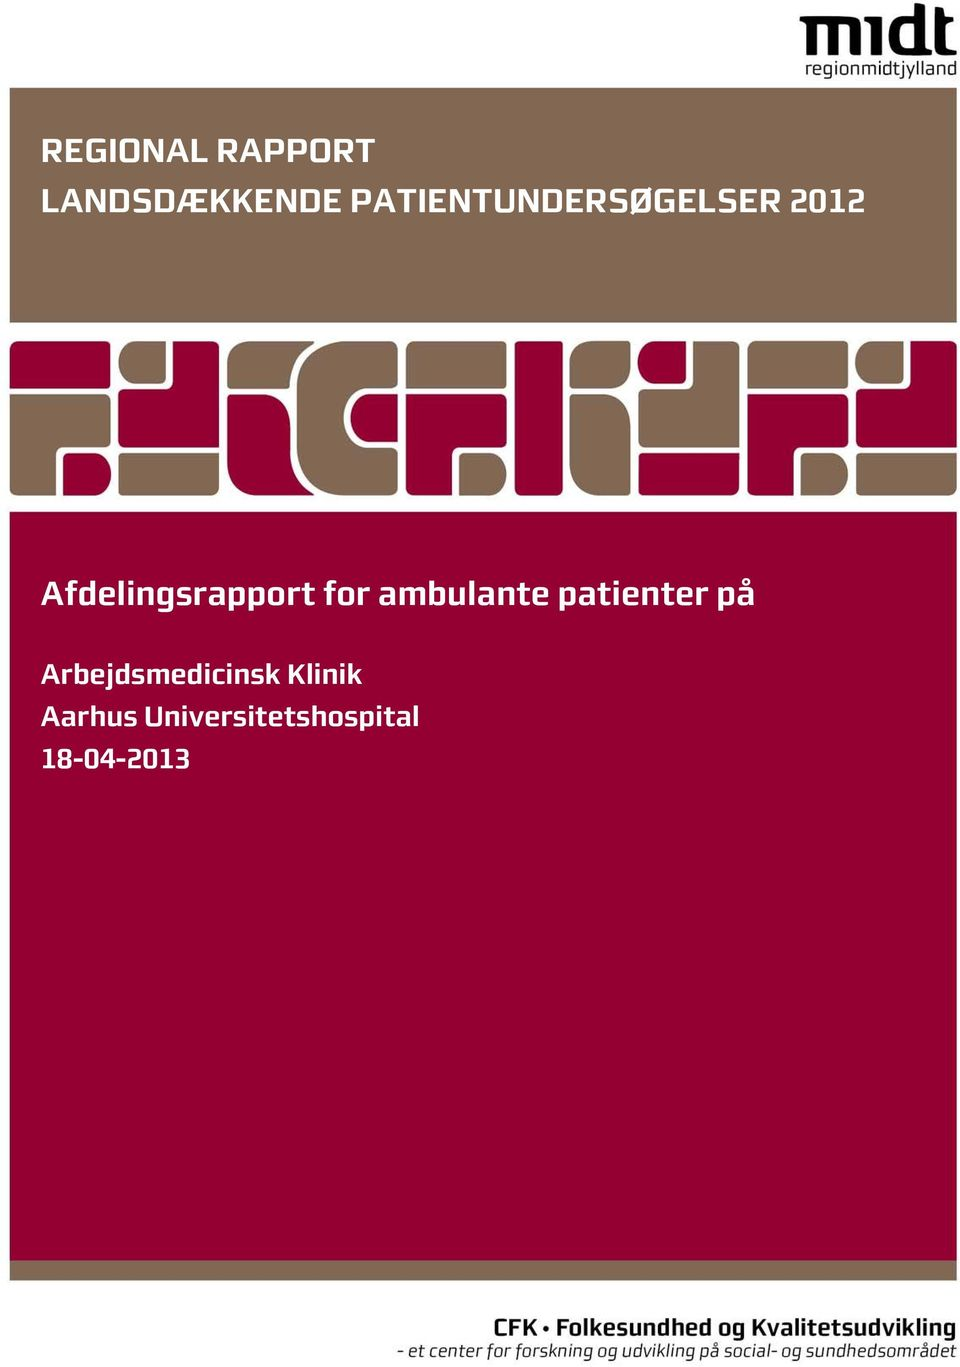 Afdelingsrapport for ambulante patienter